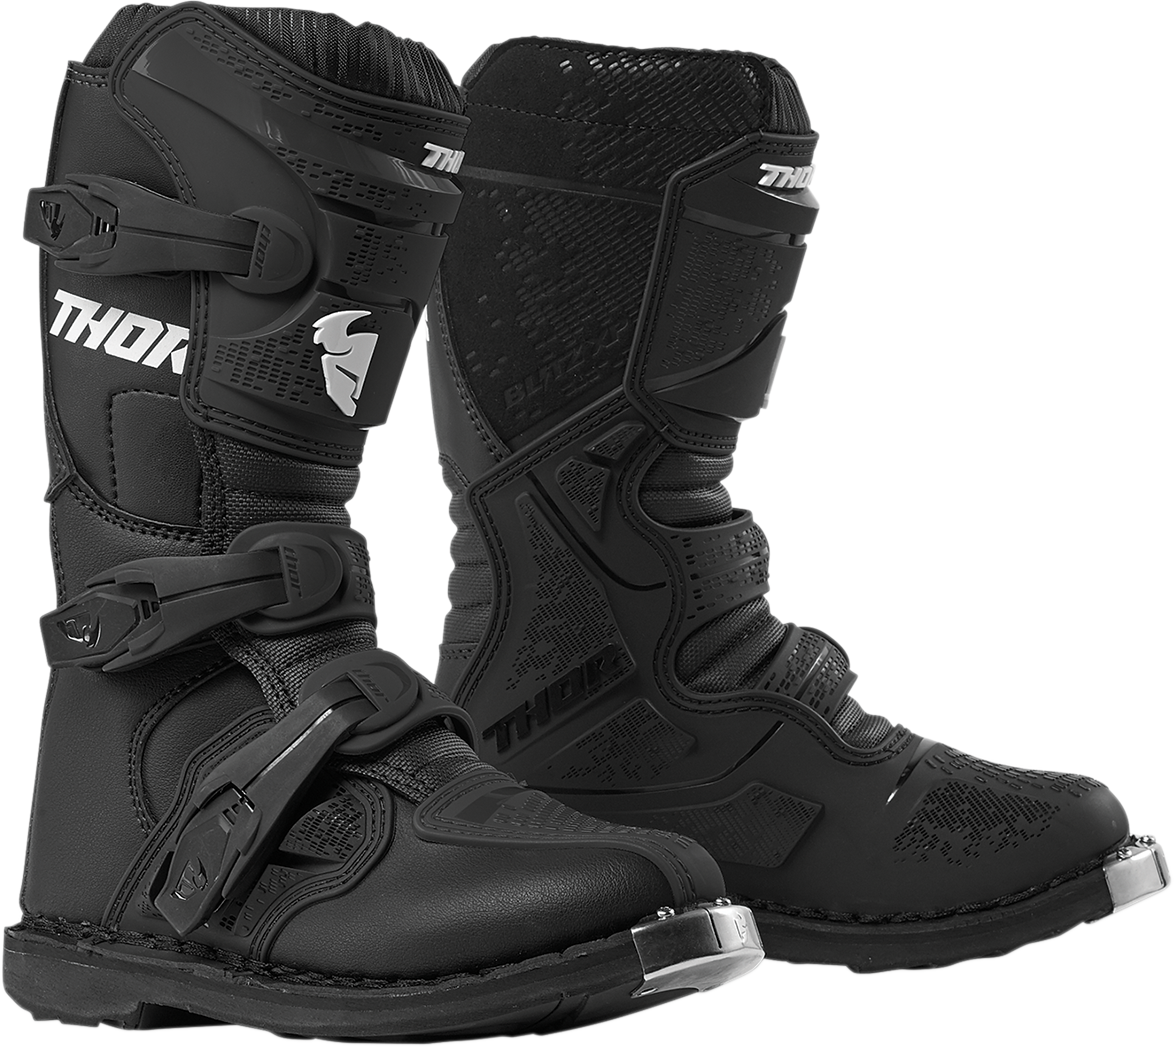 Thor Textile Pair Youth Kids Blitz XP Offroad Riding Dirt Bike Racing Boots